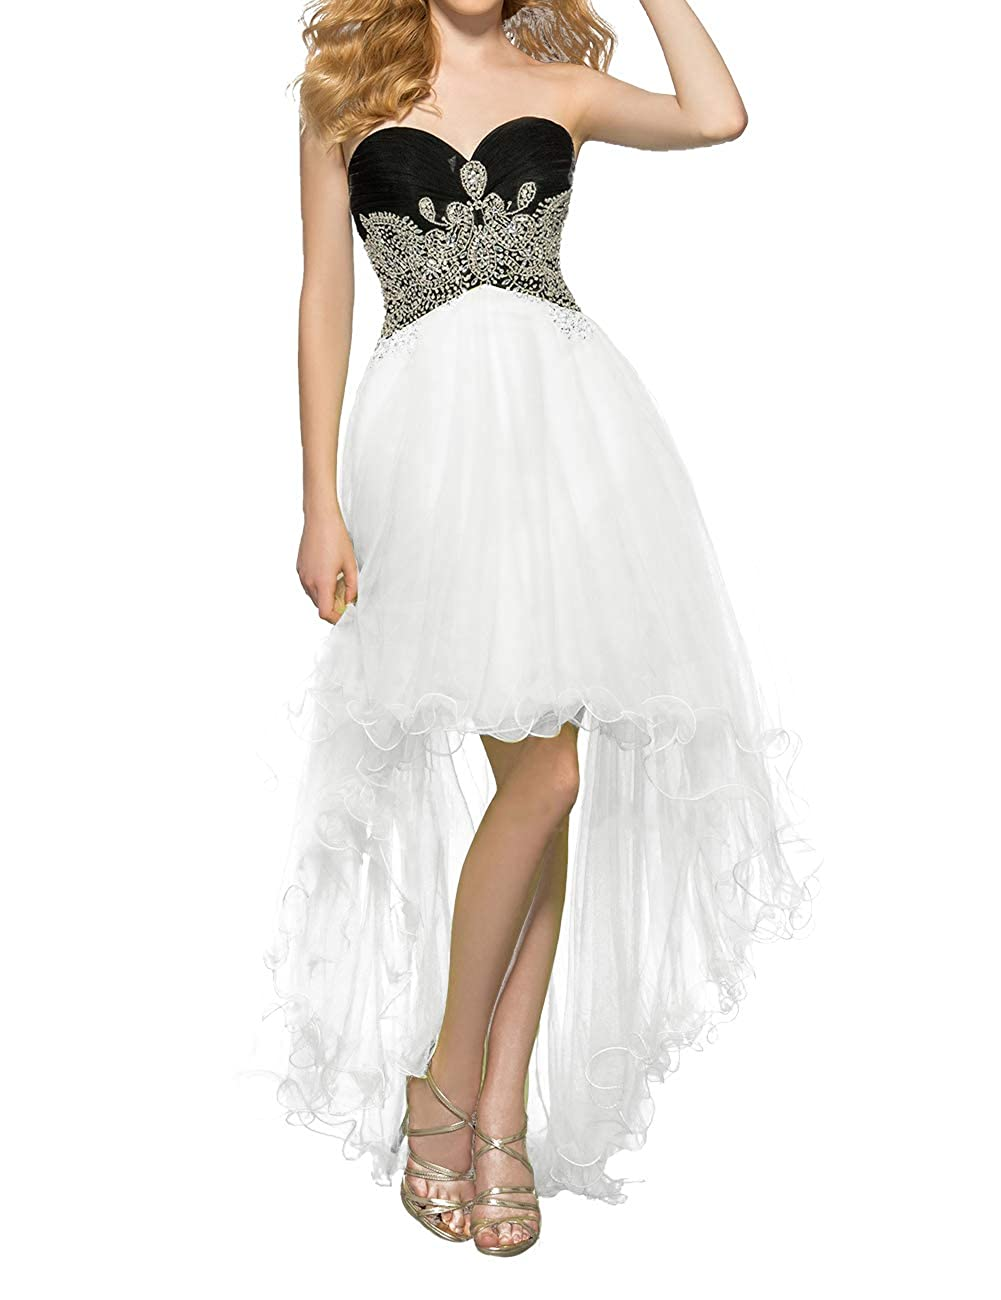 White Uther Women's Tulle HiLow Beaded Prom Dresses Strapless Evening Homecoming Cocktail Gowns